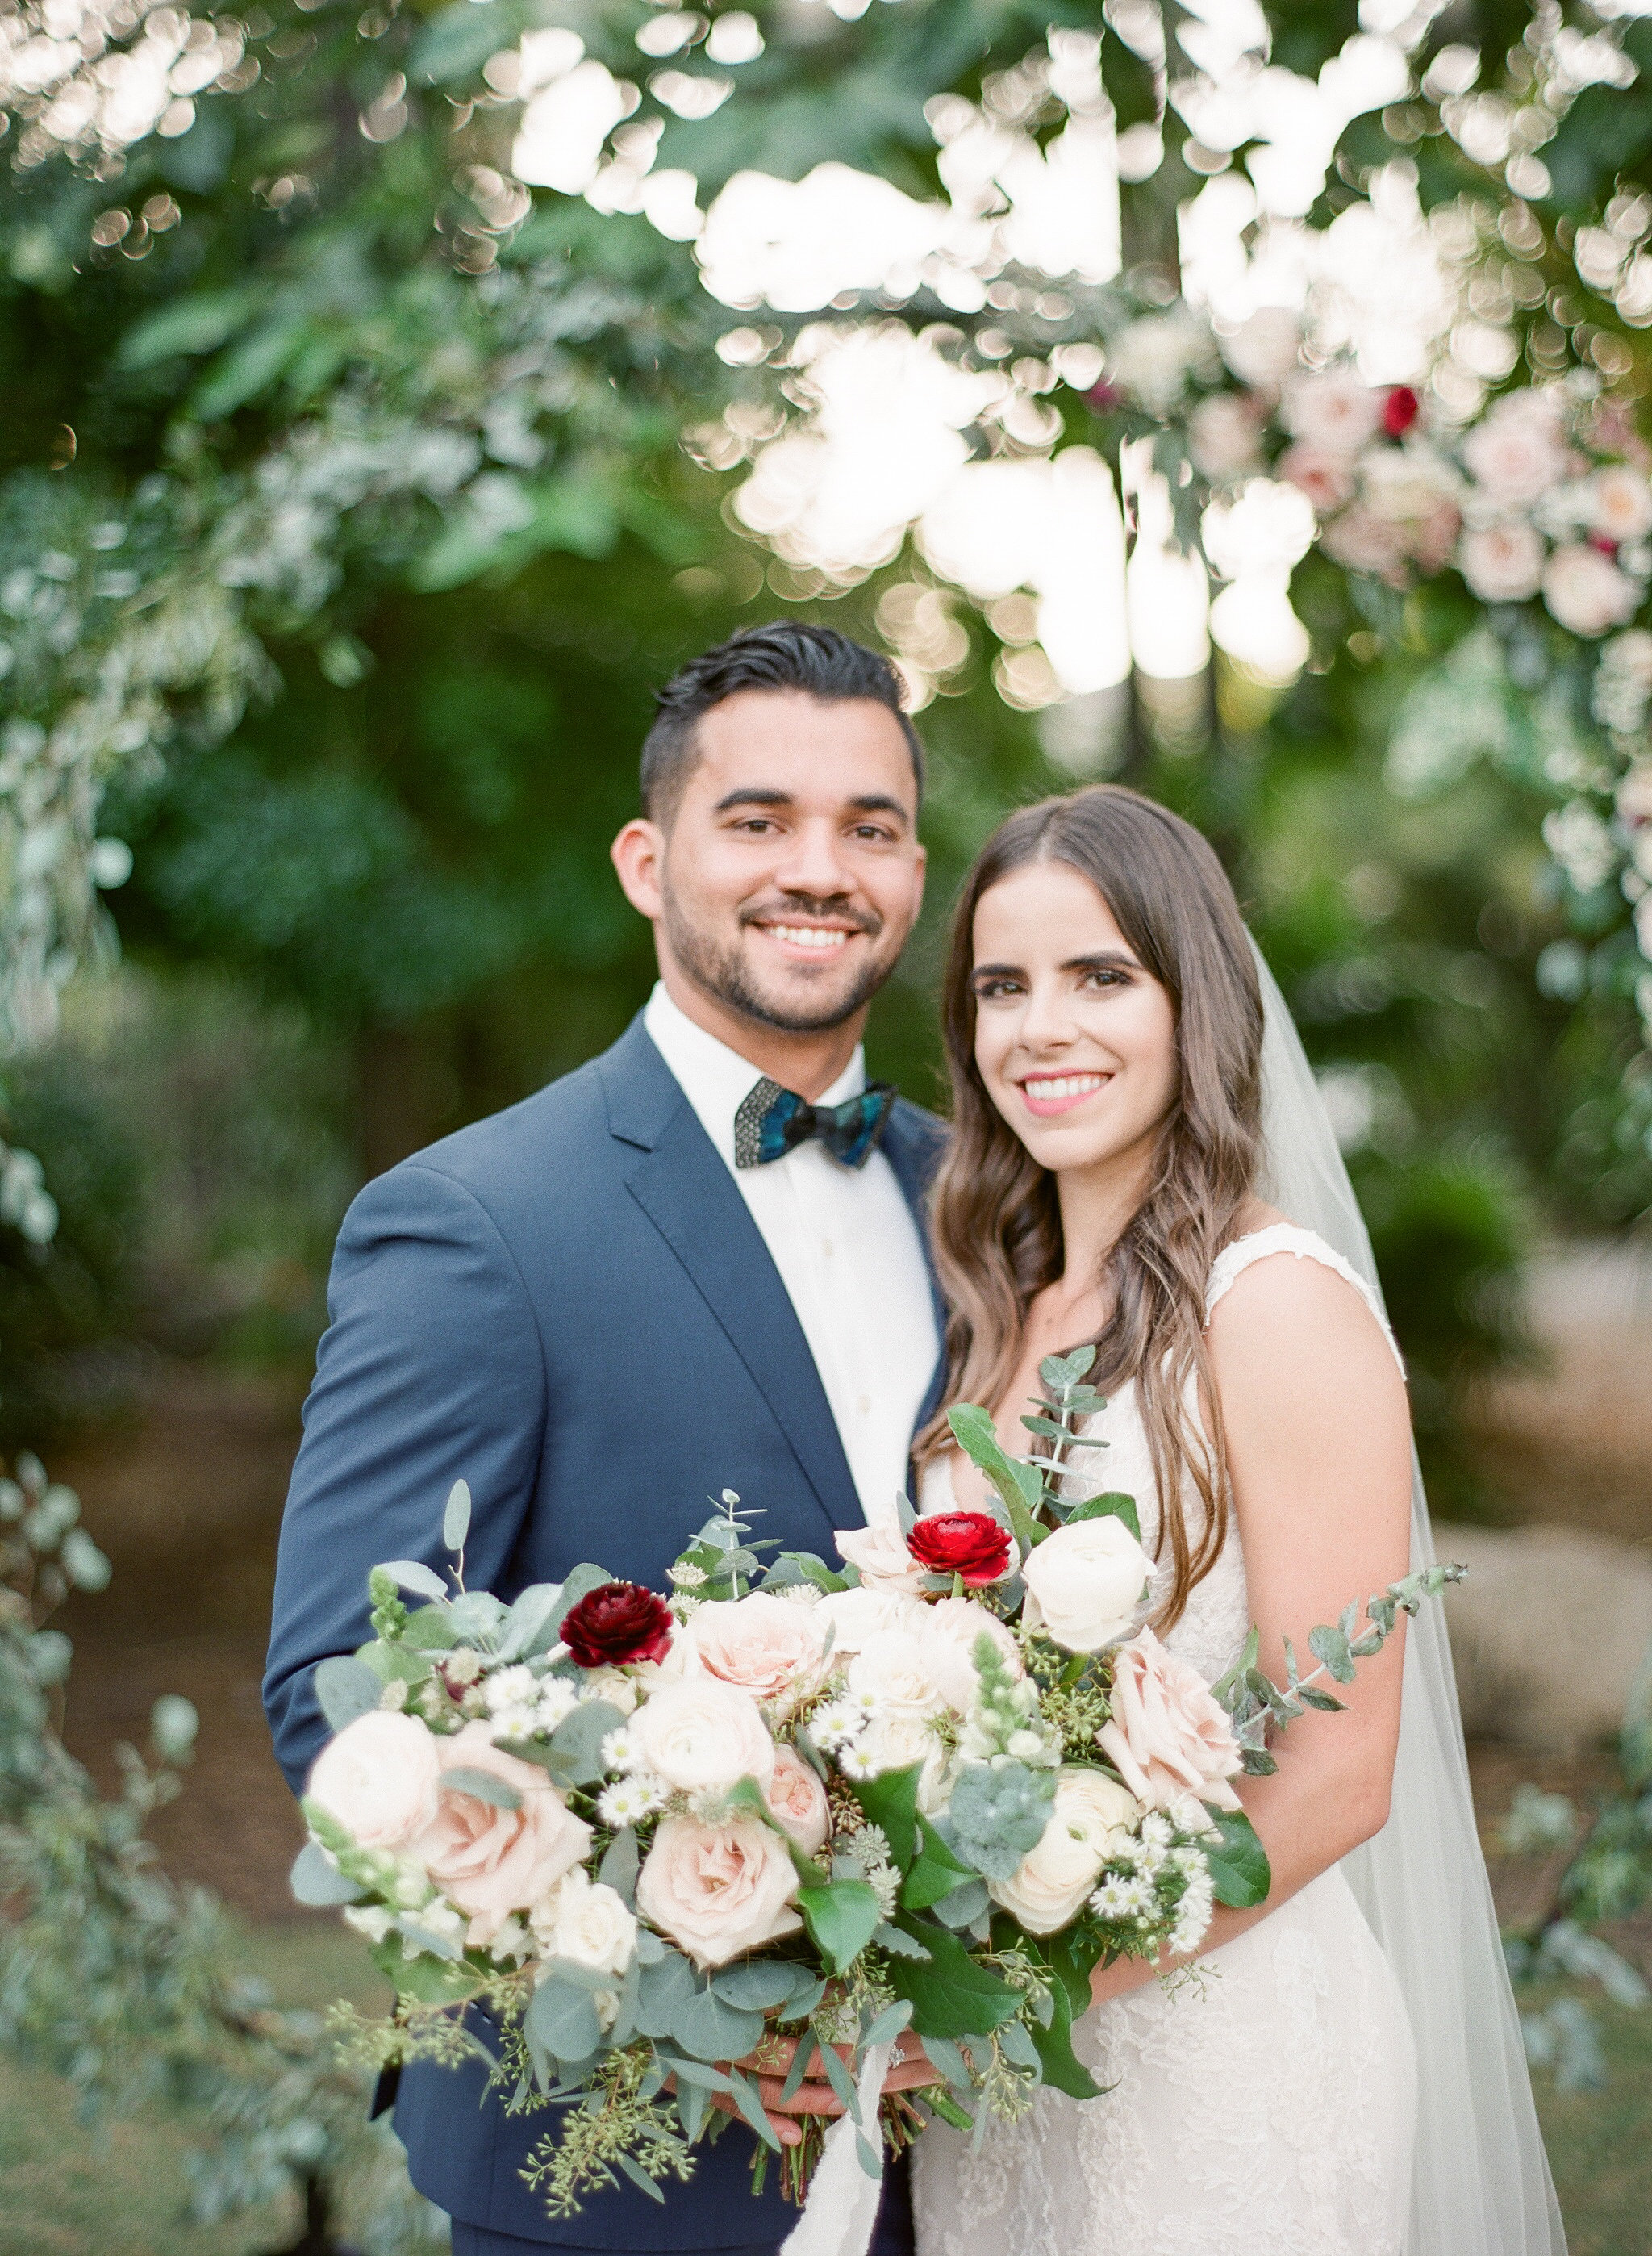 Boho Chic Garden Wedding in Miami Beach Botanical Gardens Florida The Creatives Loft Wedding Planning Studio